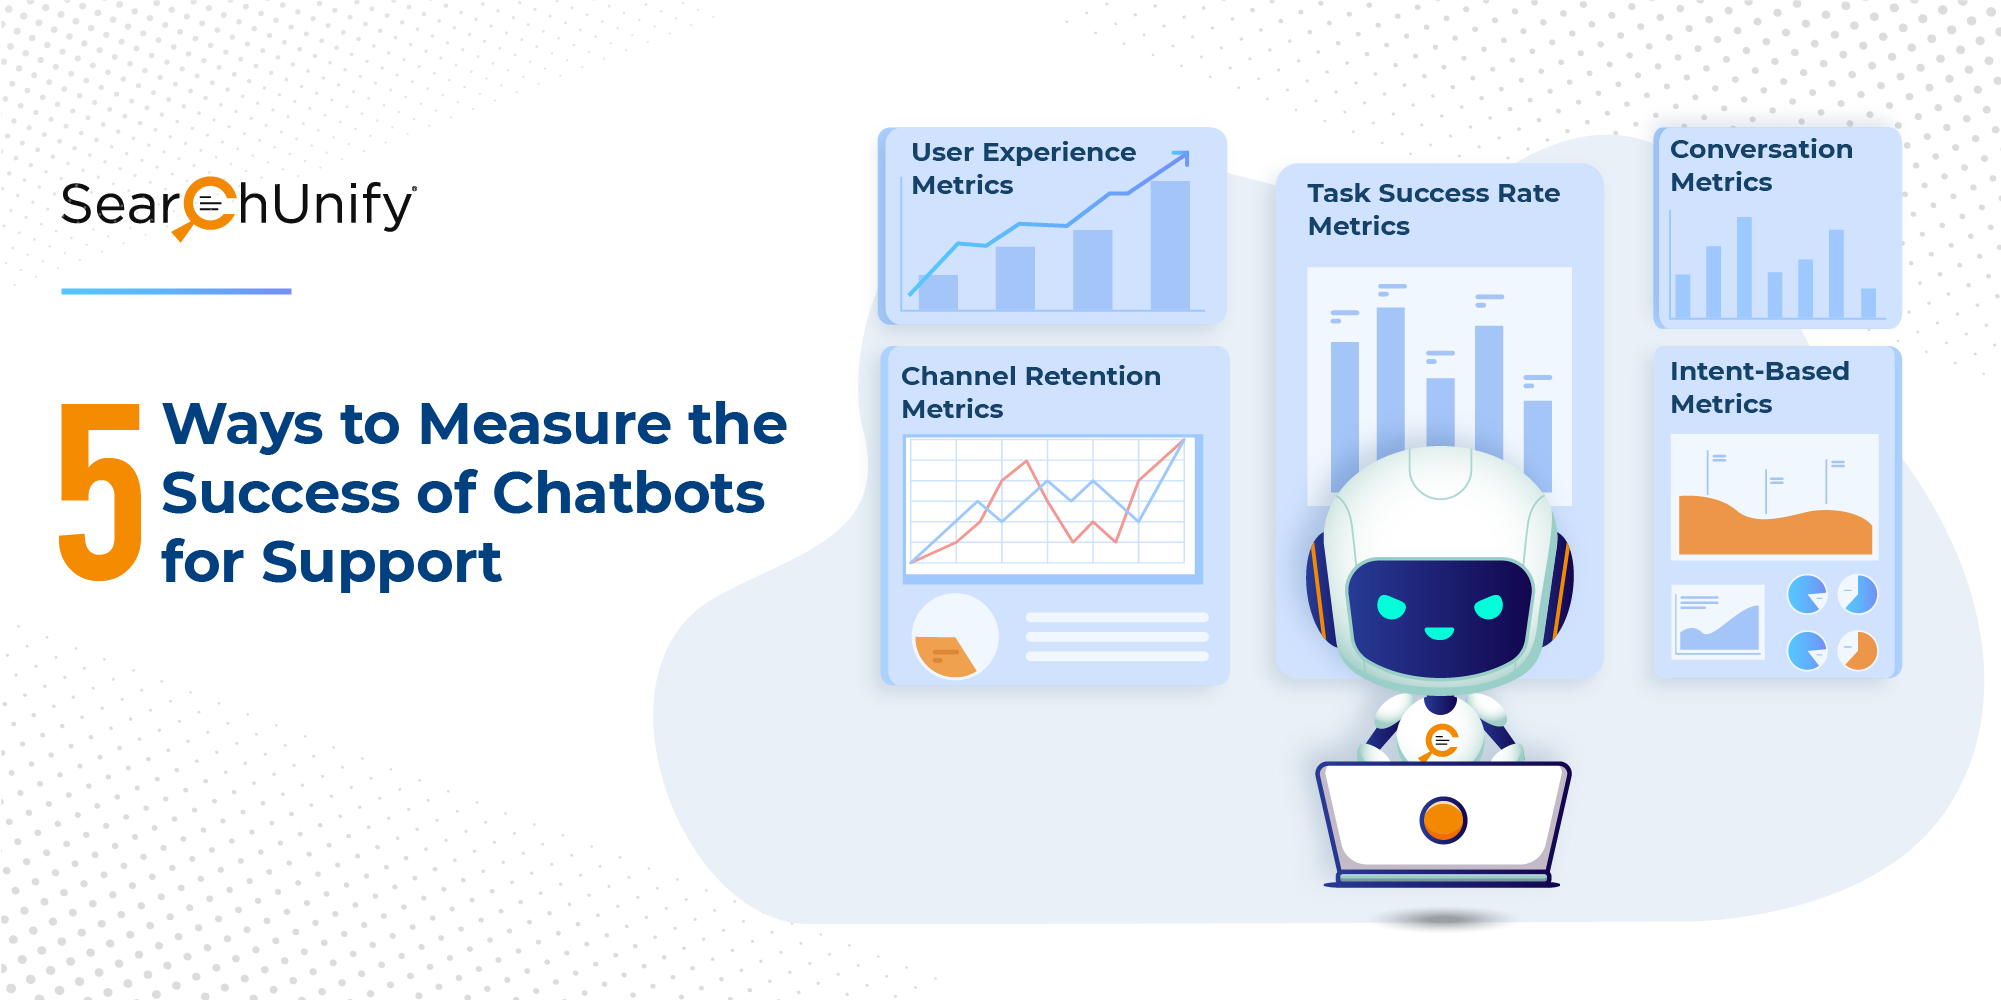 5 Ways to Measure the Success of Chatbots for Support